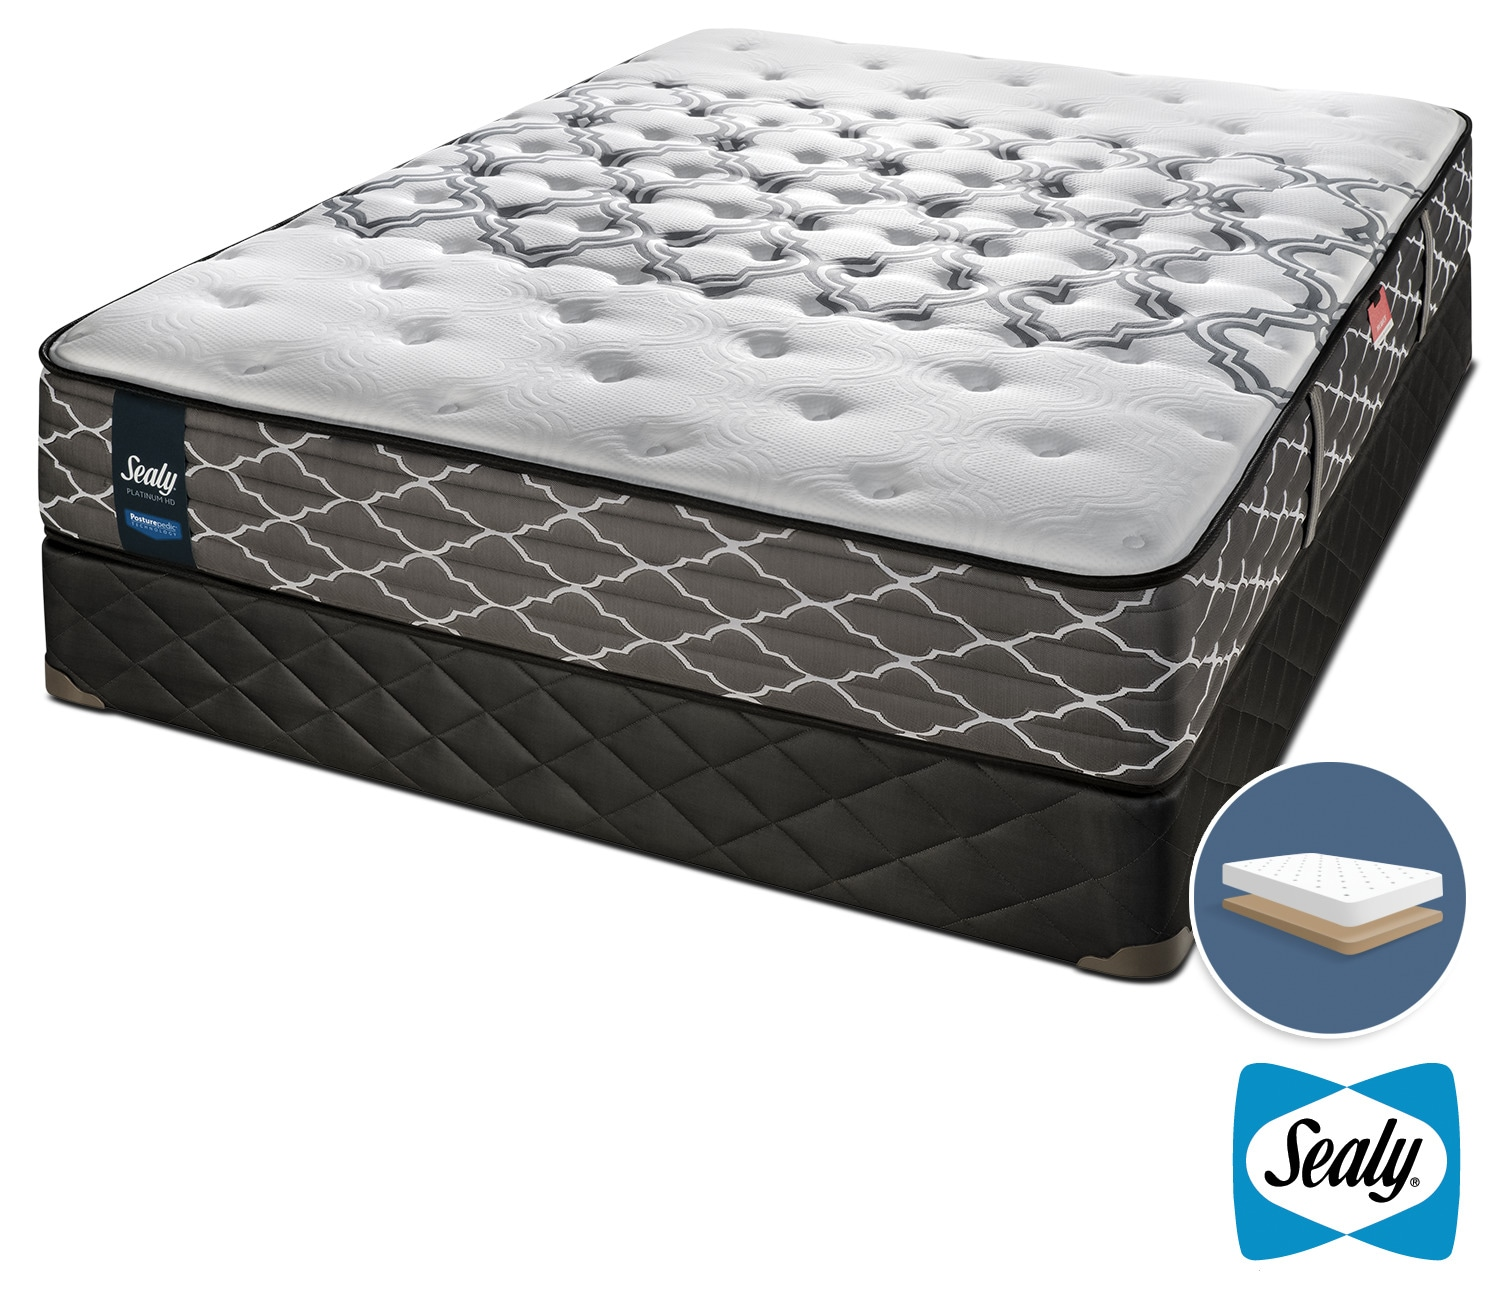 Sealy Late Night Hybrid Extra Firm Full Mattress and Low-Profile Boxspring Set